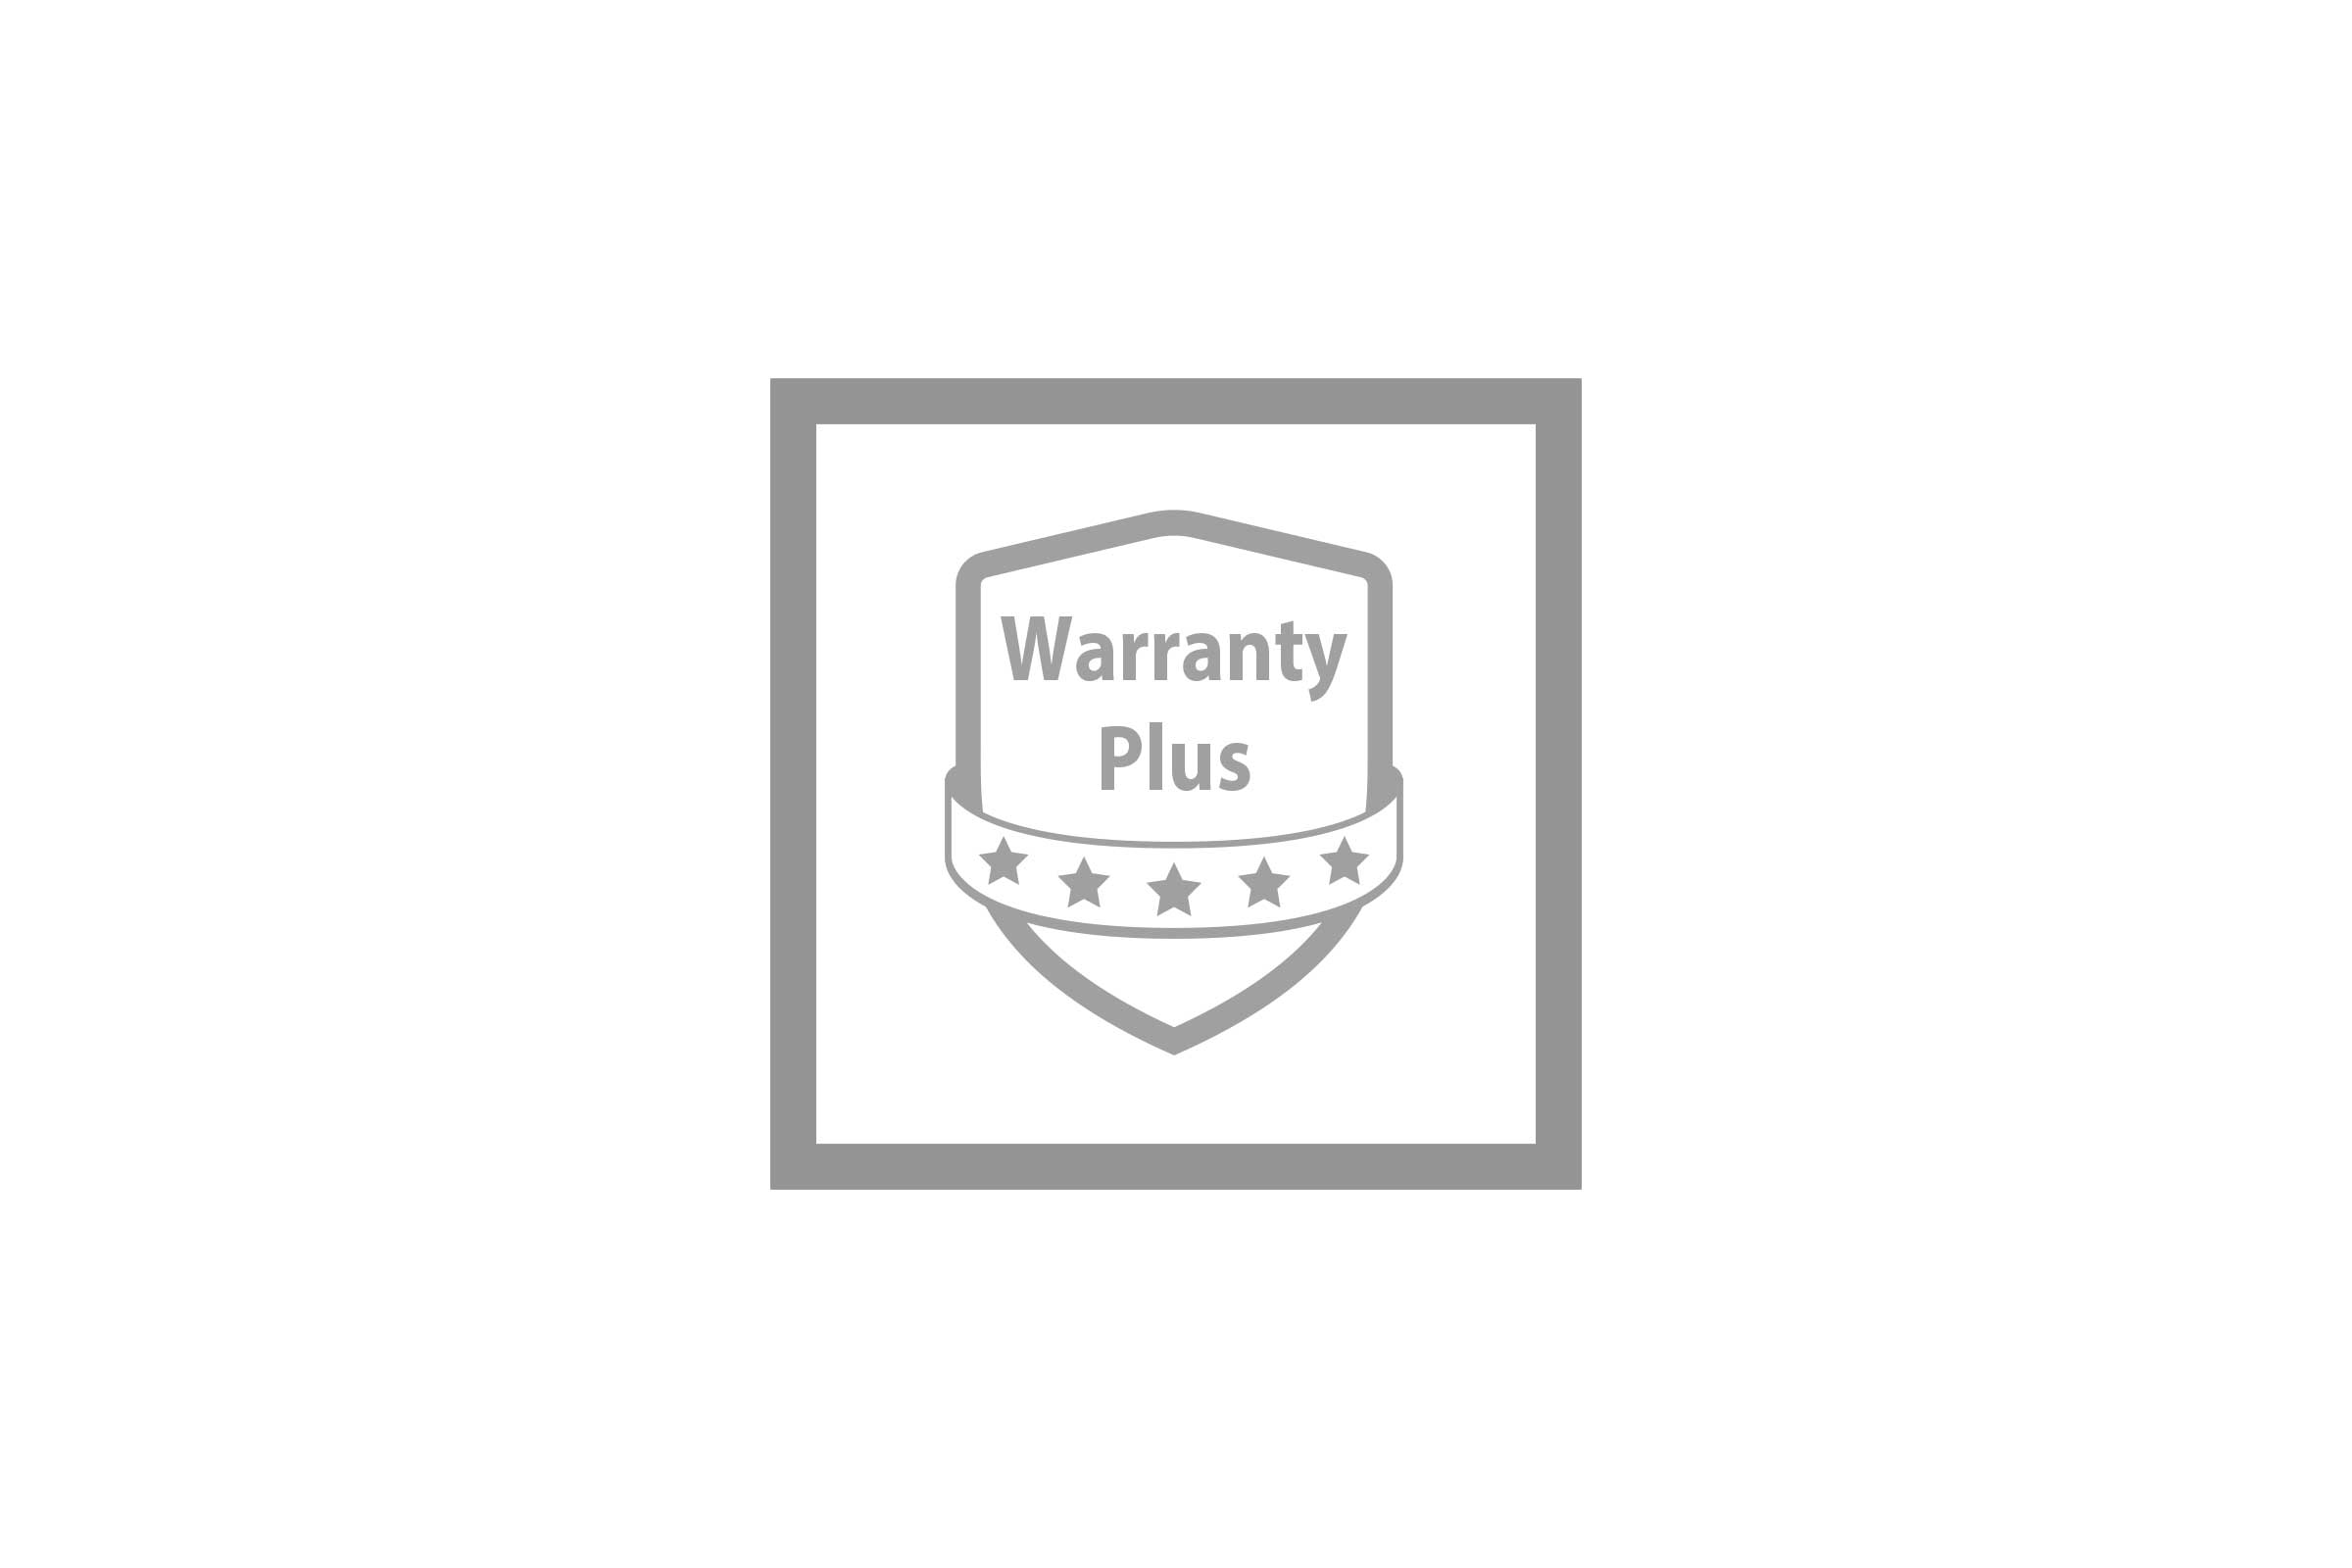 Enjoy extended warranty coverage upon product registration.